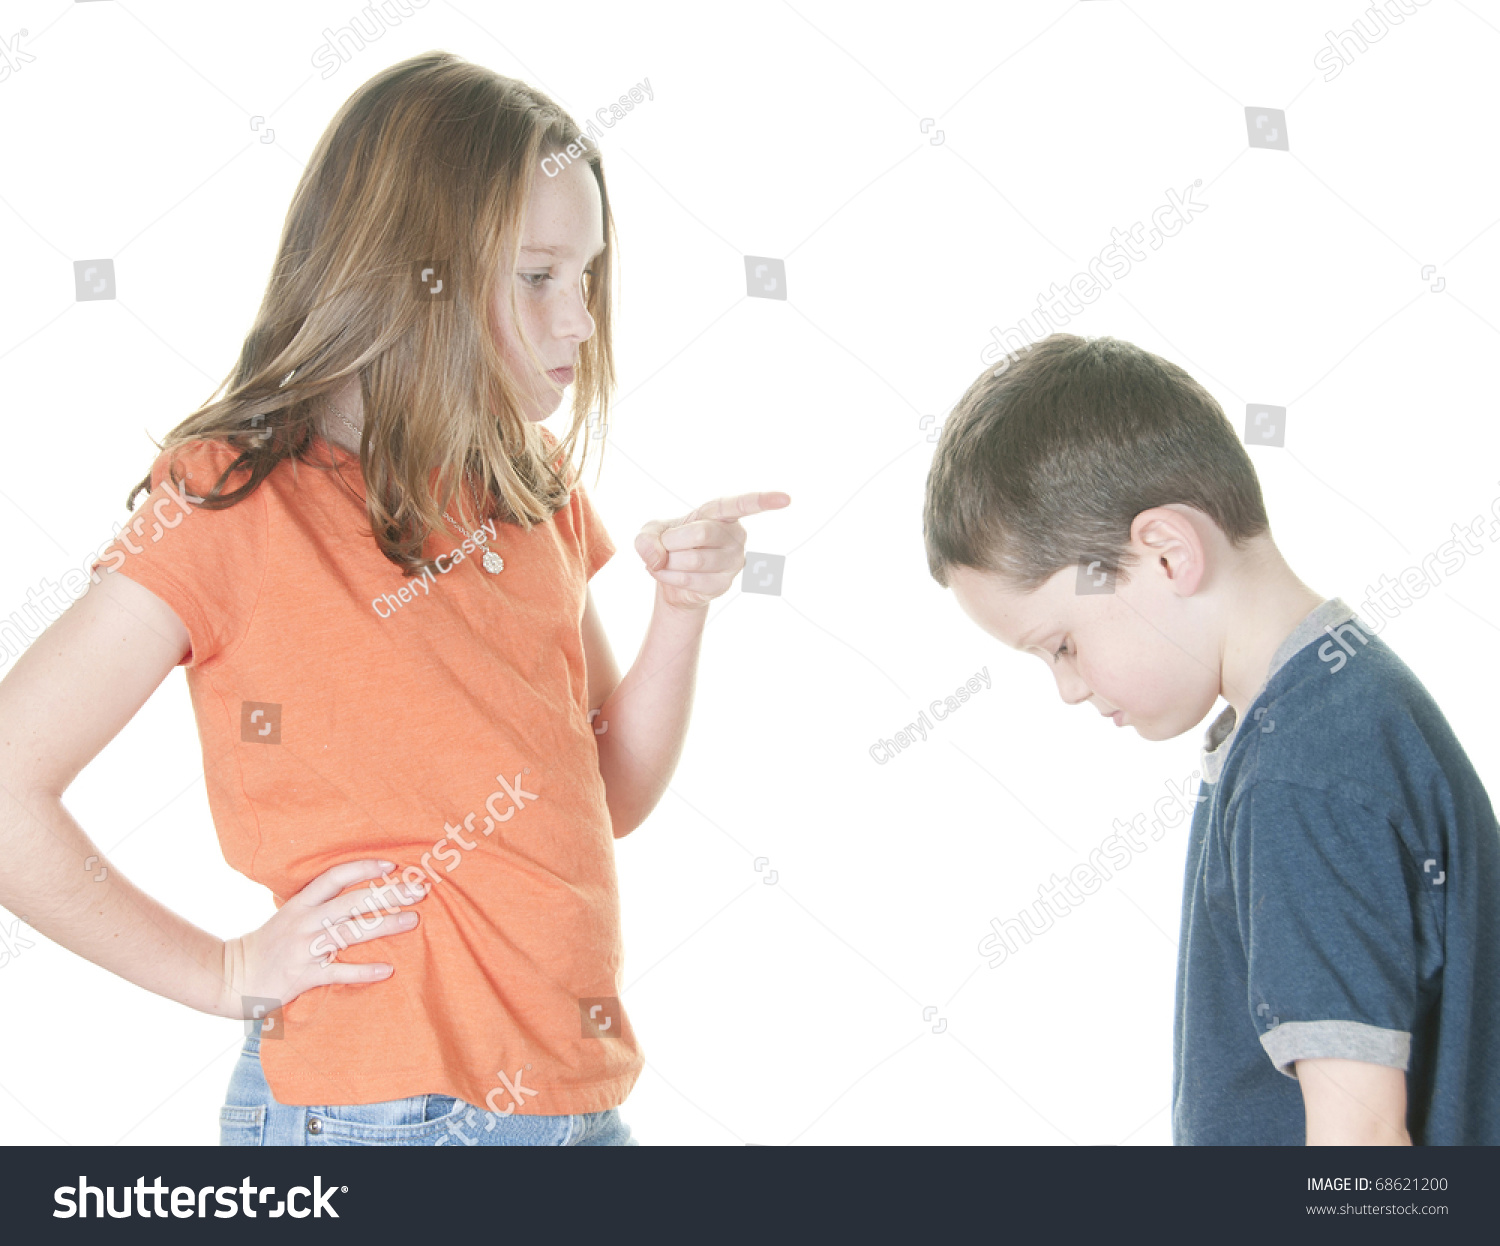 """girl dating a younger boy What it's like dating a guy who's 8 years younger than me by jen kirsch oct 4 2017 """"what will they whisper, though""""  a baby-faced boy eight years my ."""